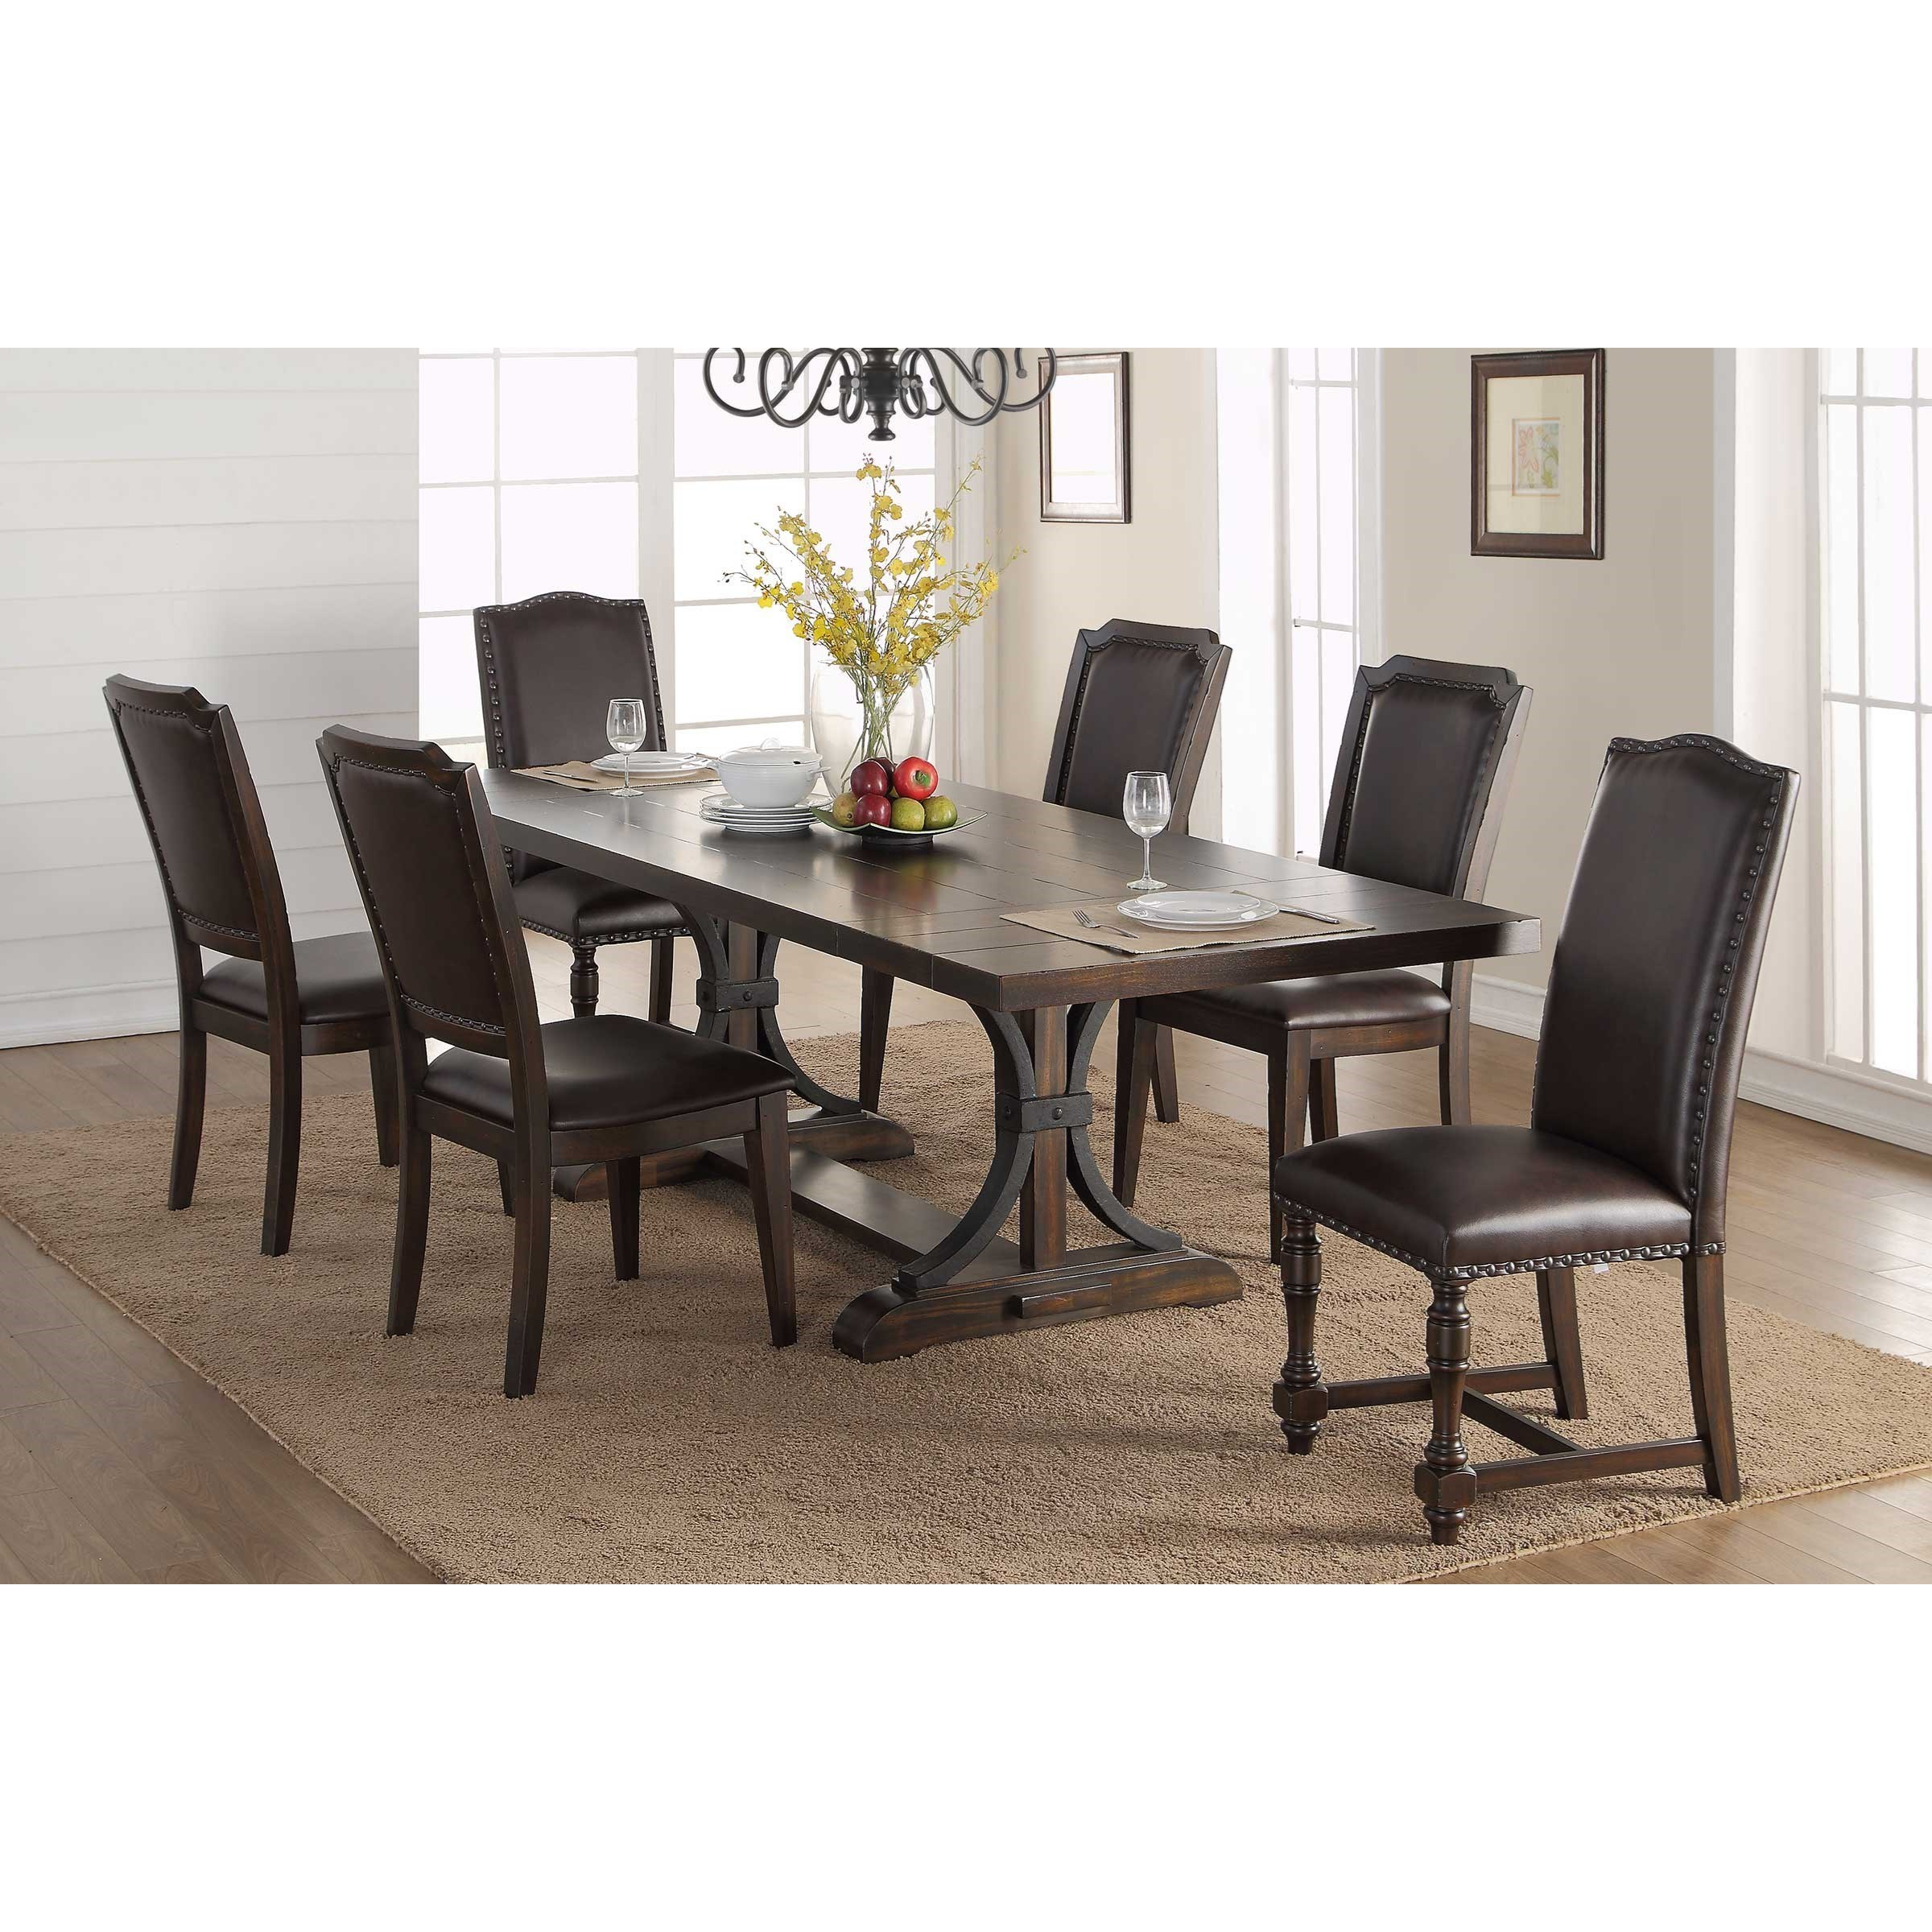 Winners Only Montreal Transitional 7 Piece Table And Chair Set Lindy S Furniture Company Dining 7 Or More Piece Sets